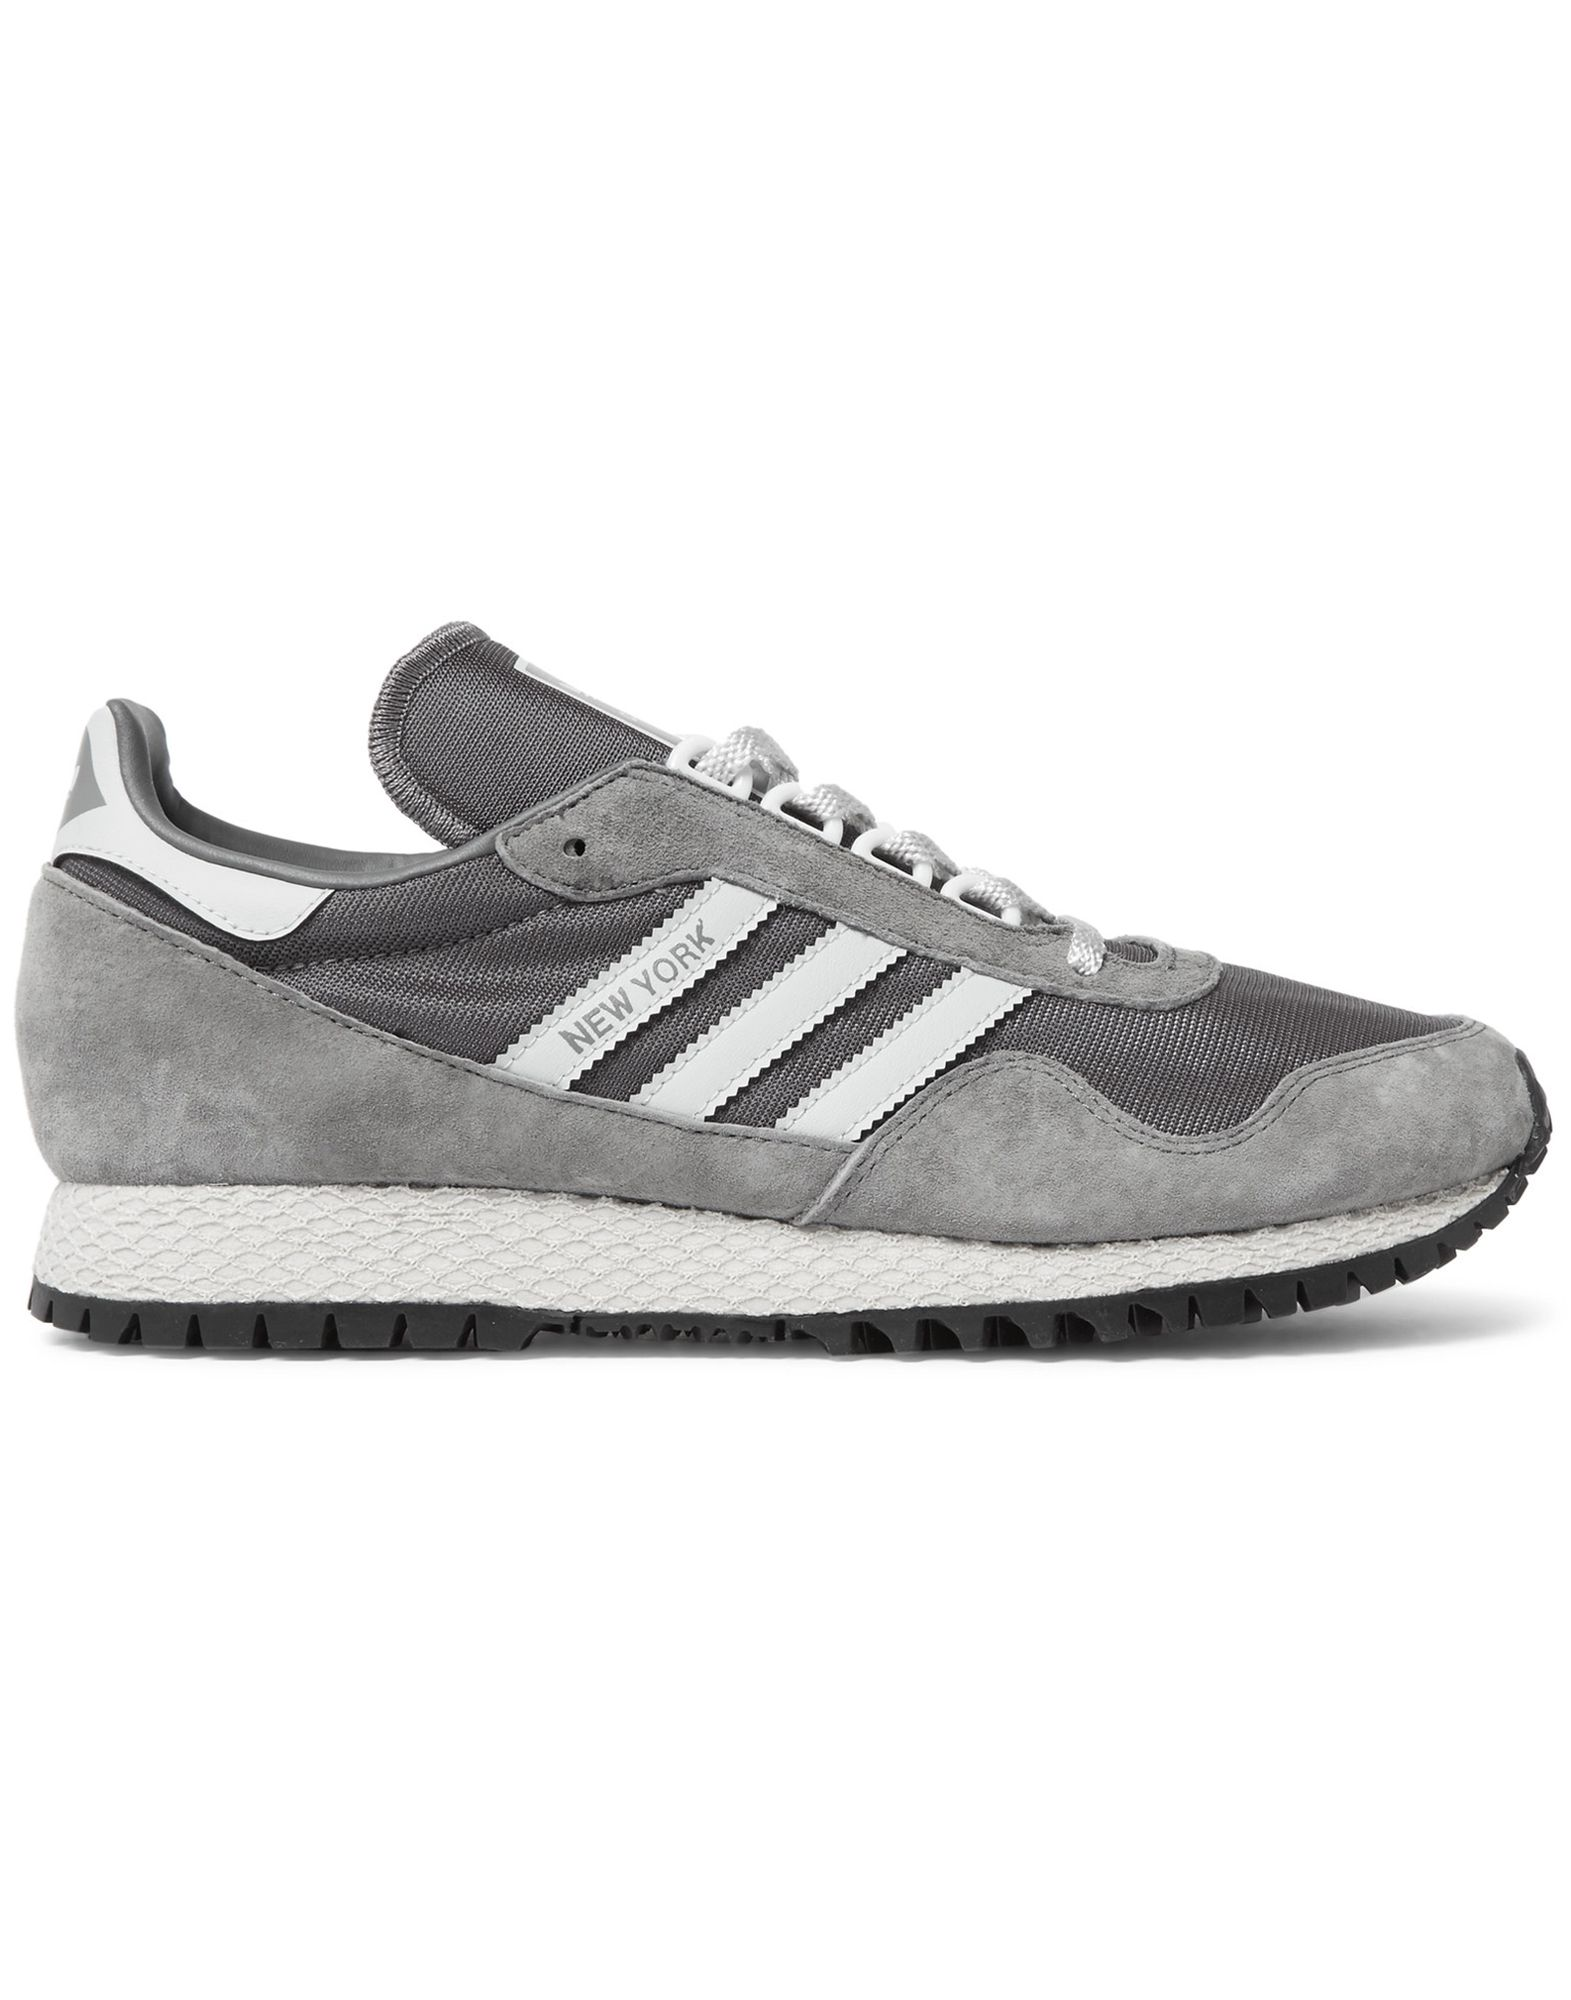 Sneakers Adidas Originals Uomo Uomo Originals - 11539540RF 2e3e04